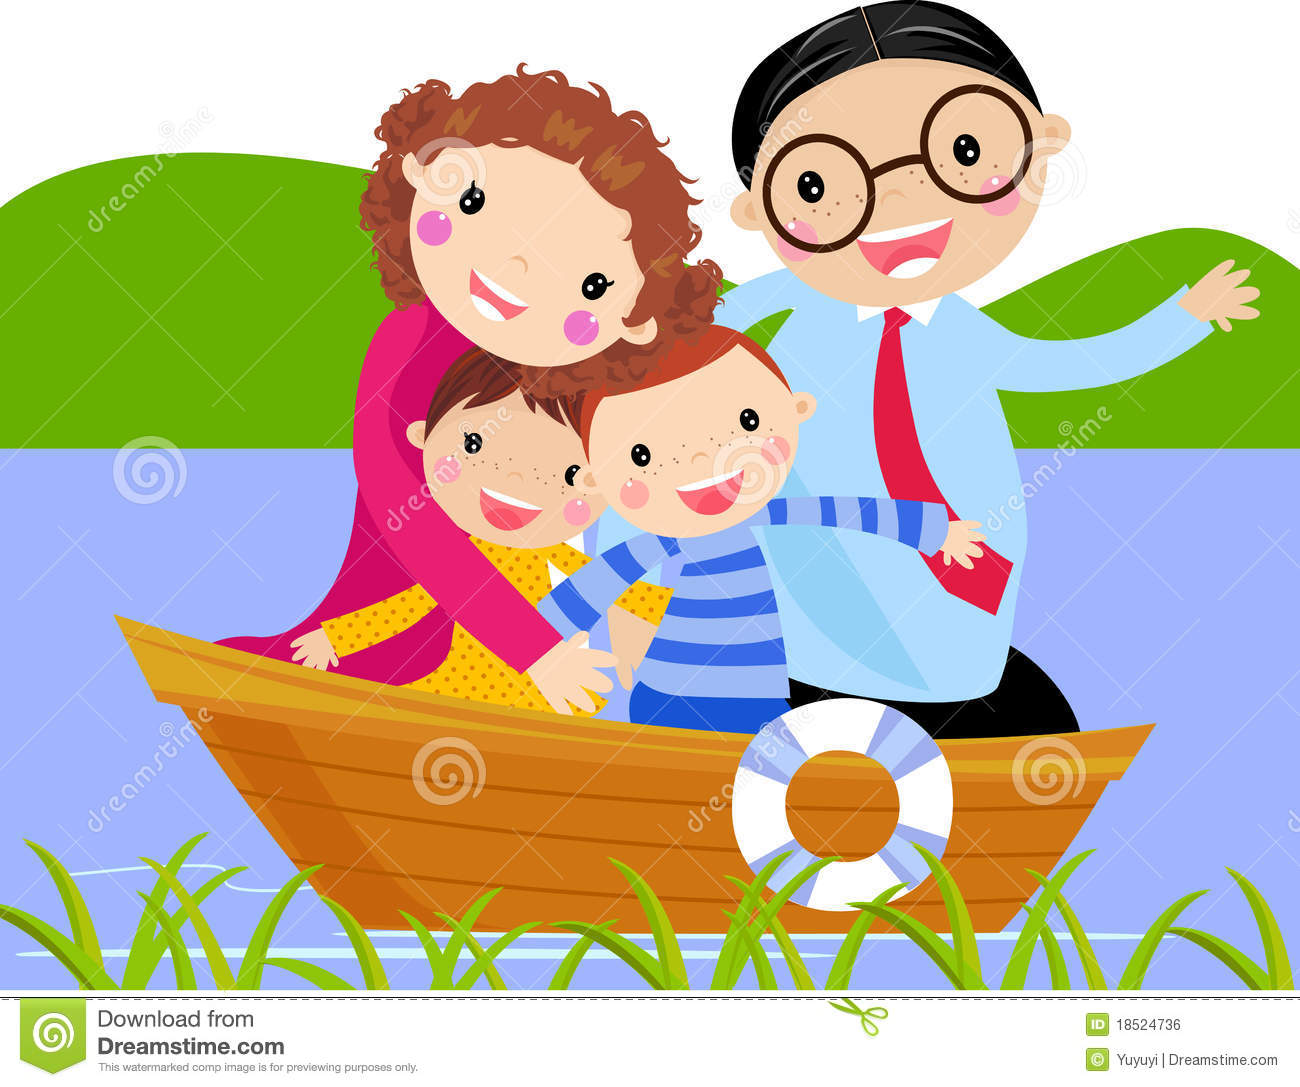 Boating clipart images.